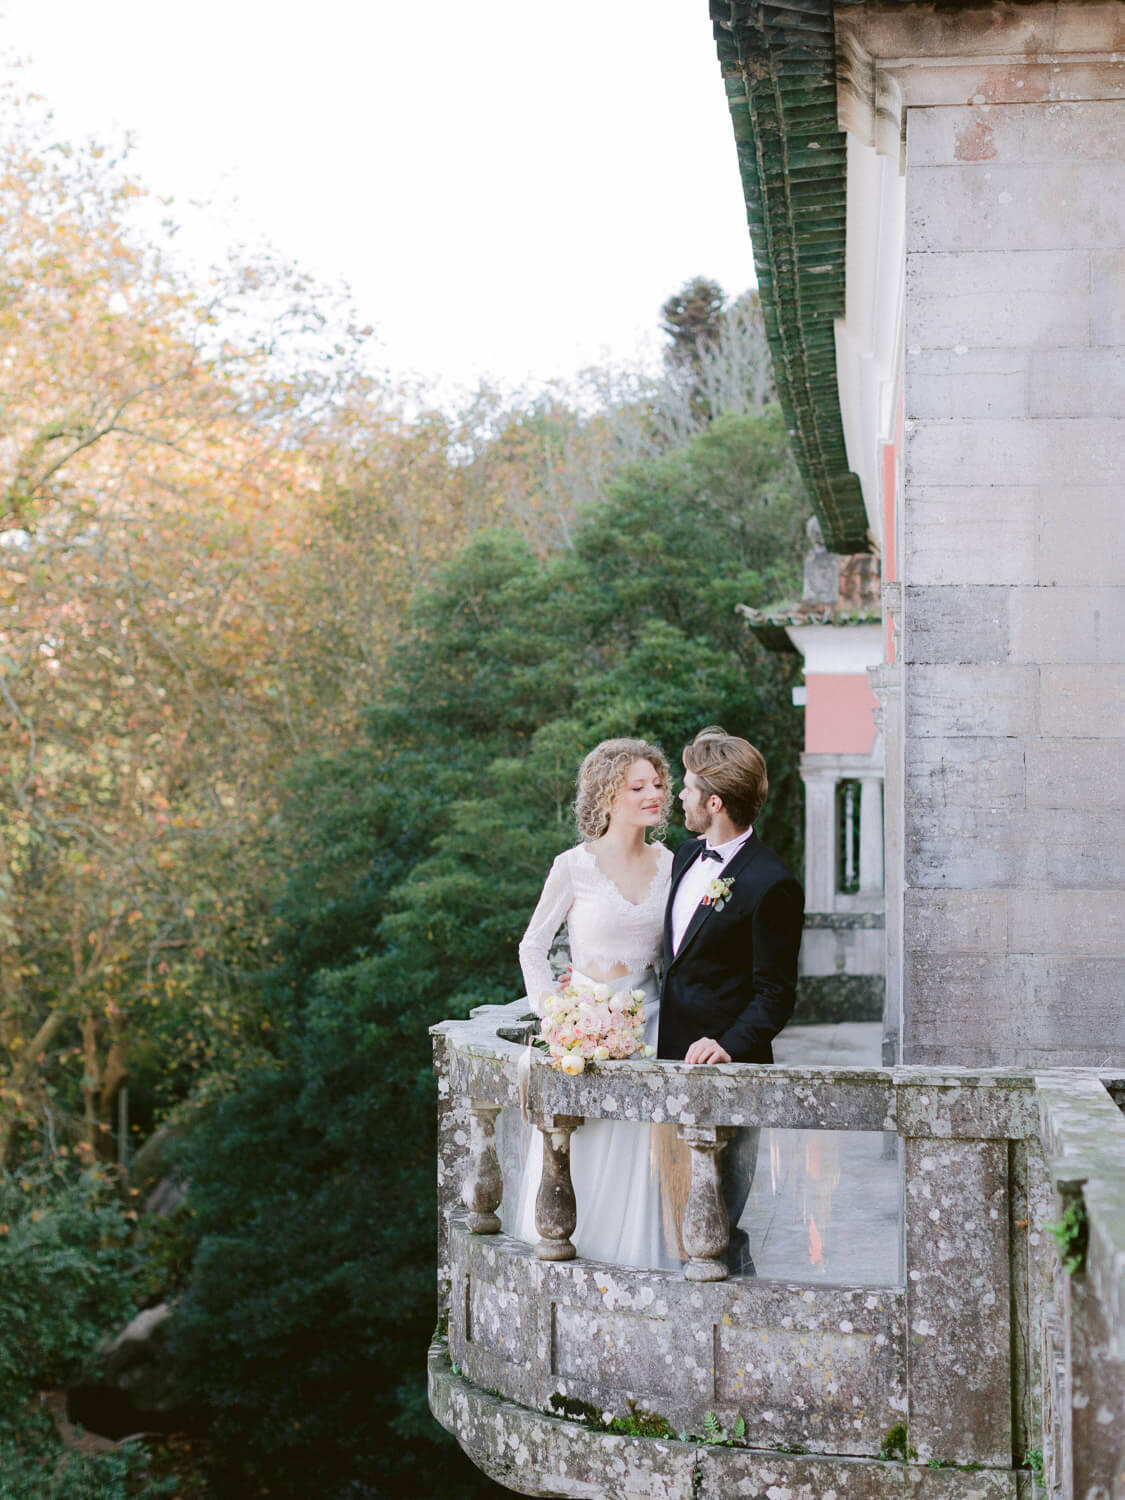 romantic wedding portrait in a balcony in Casa dos Penedos Sintra by Portugal Wedding Photographer